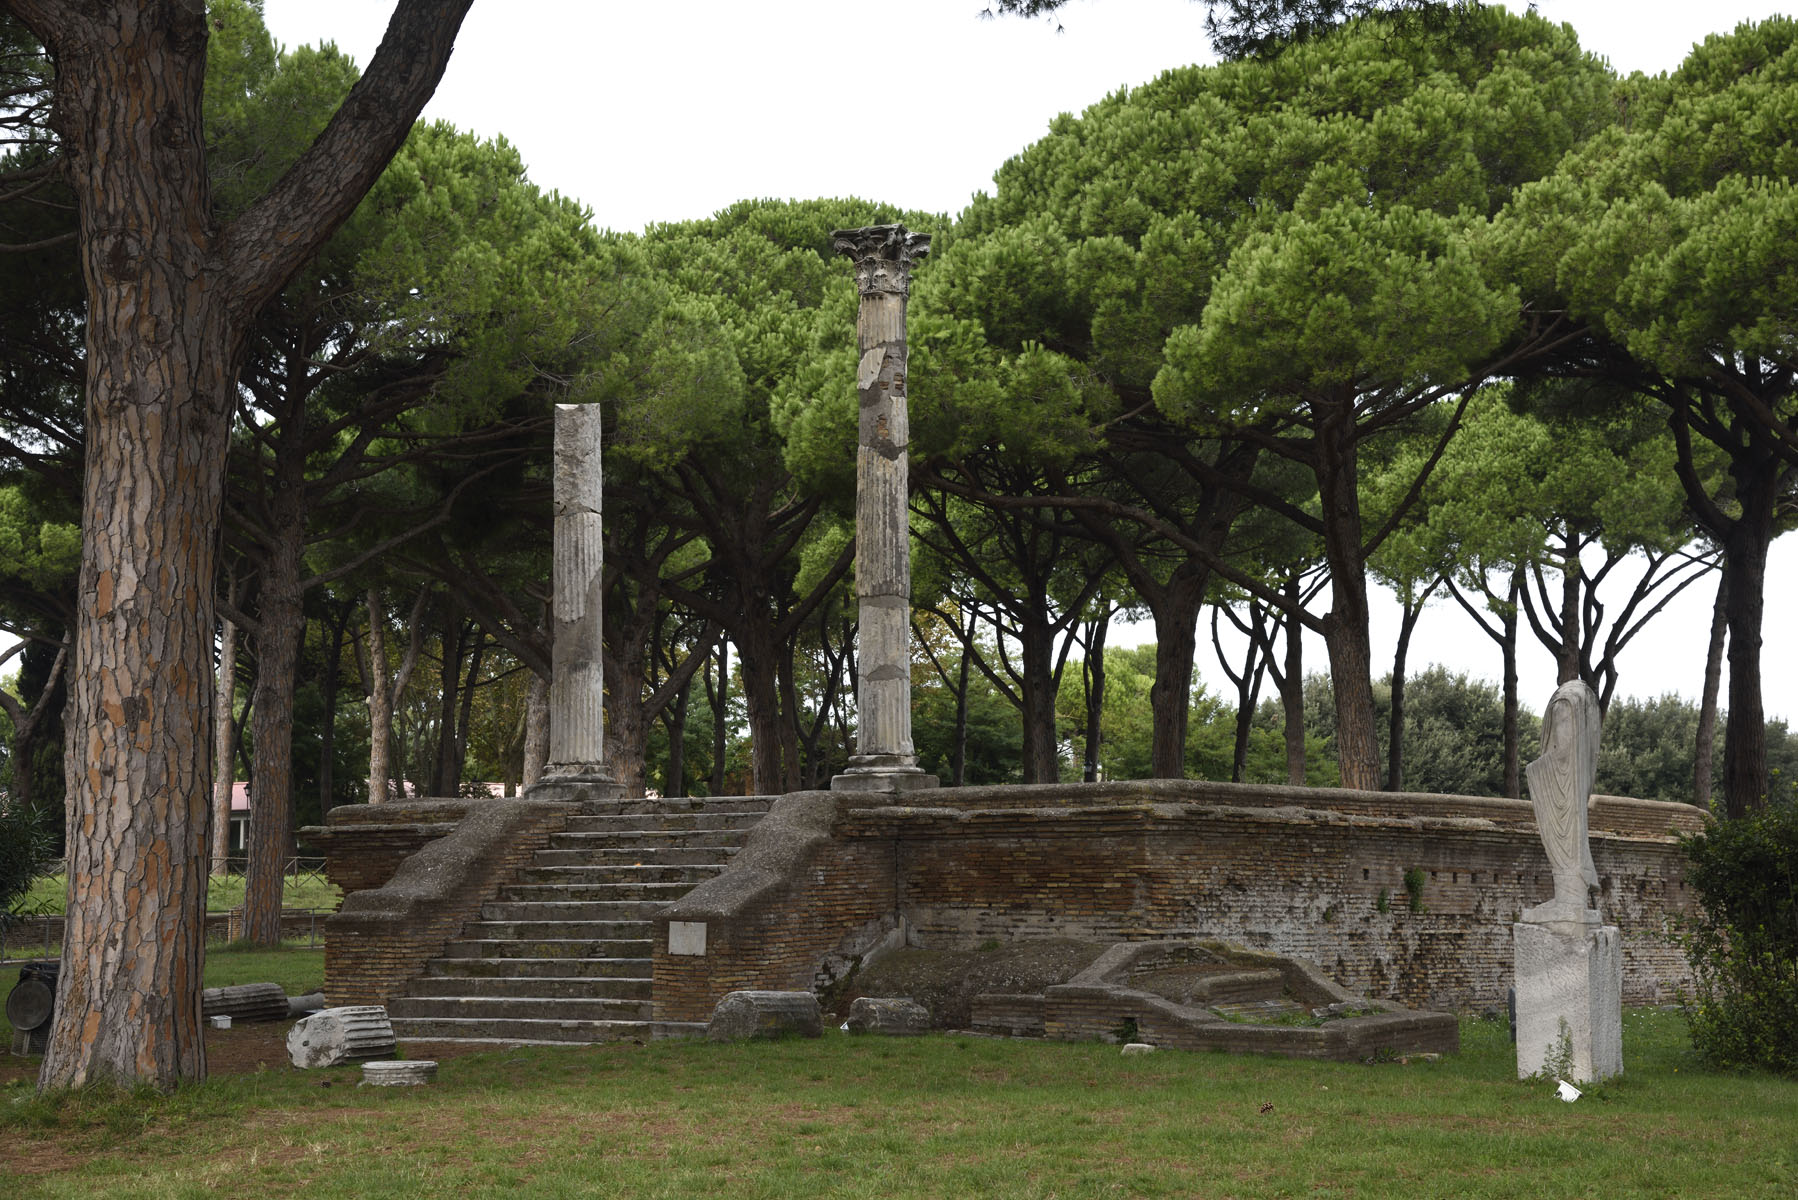 Temple of Ceres. Late 1st cent. CE. Ostia, Archaeological site (II, VII, 5)